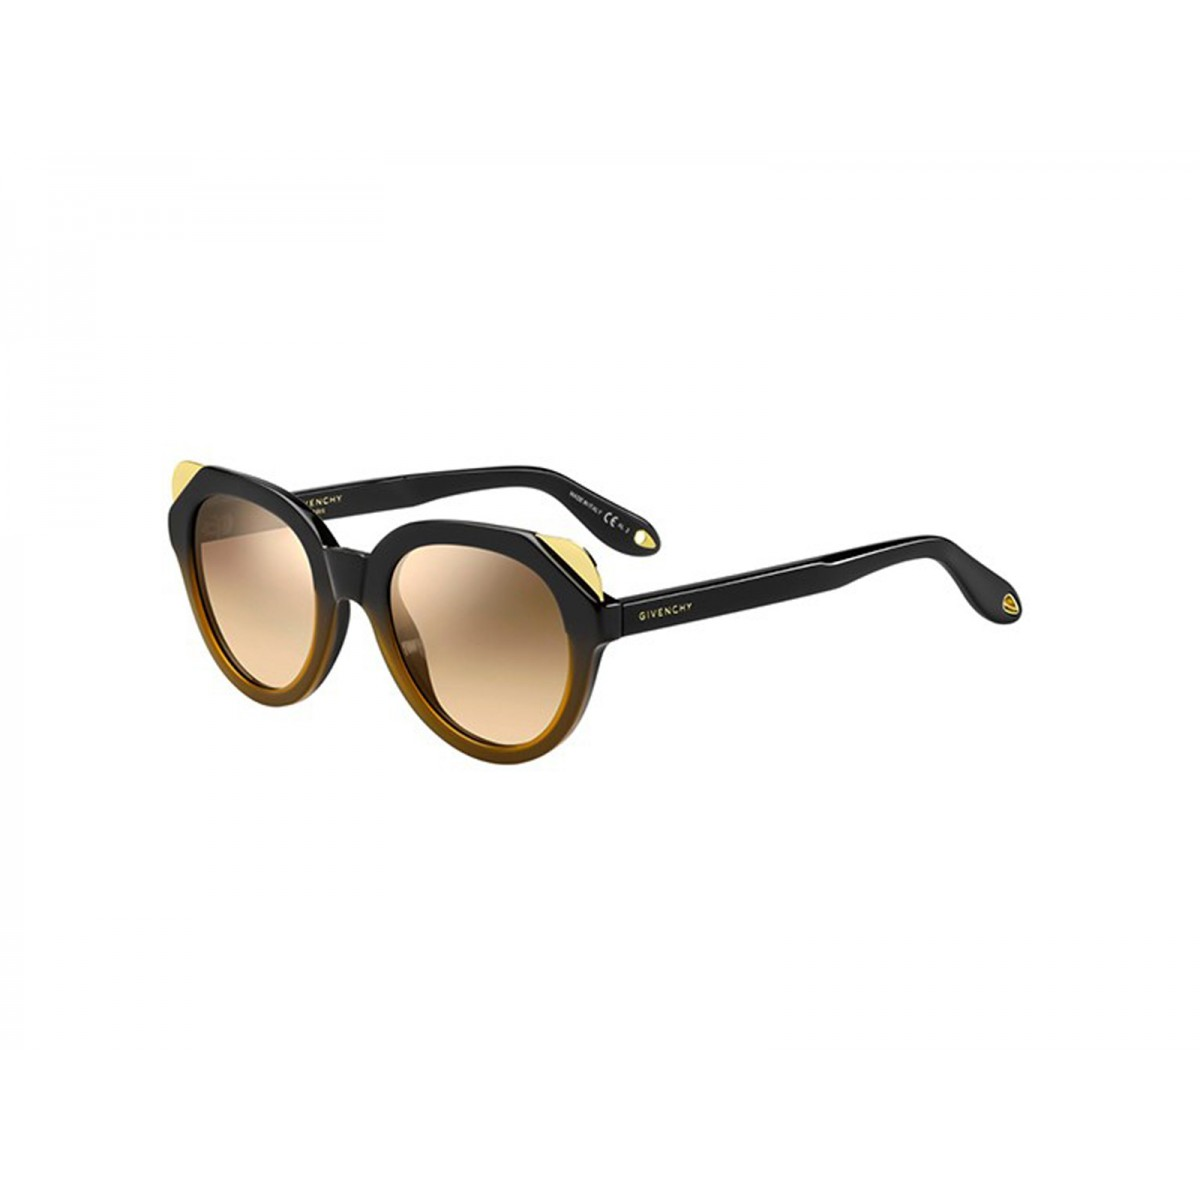 329ea7d50b Givenchy Black Brown Square Women Sunglasses GN-7053 S ...